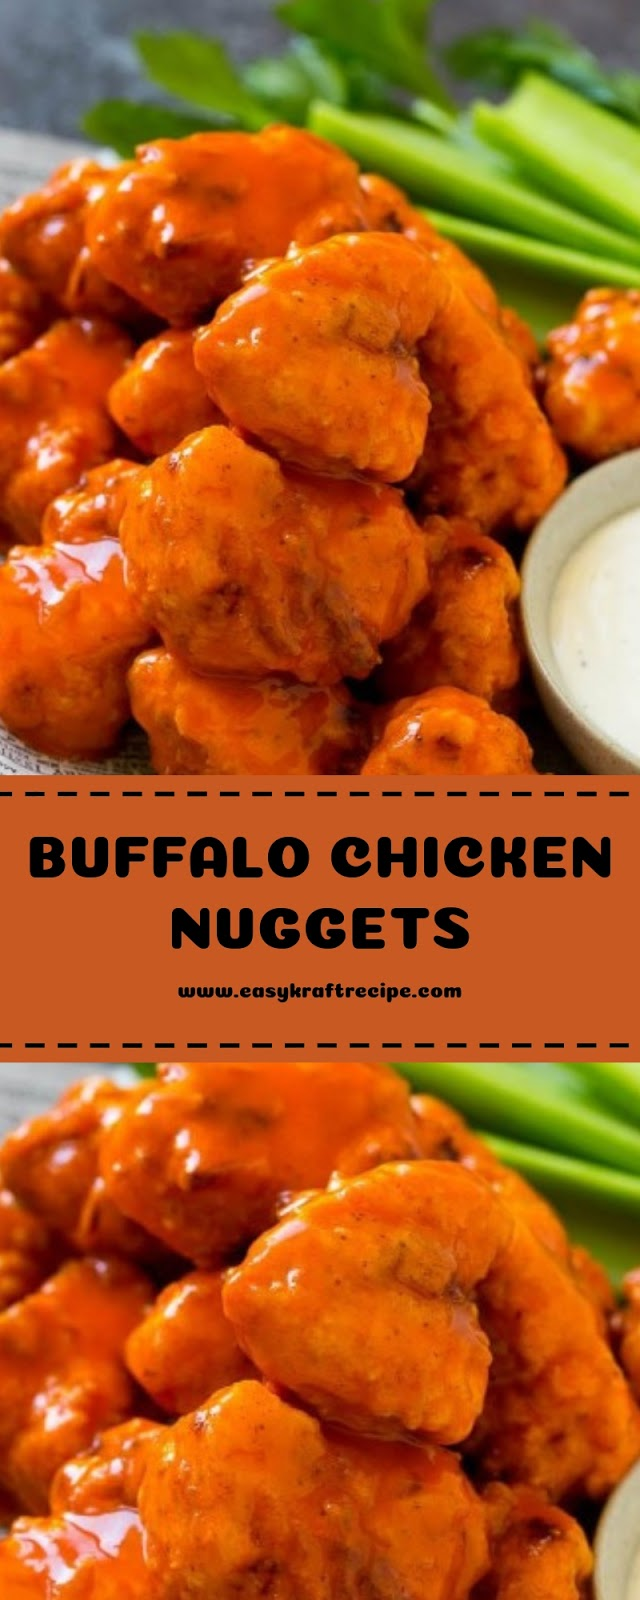 BUFFALO CHICKEN NUGGETS RECIPES